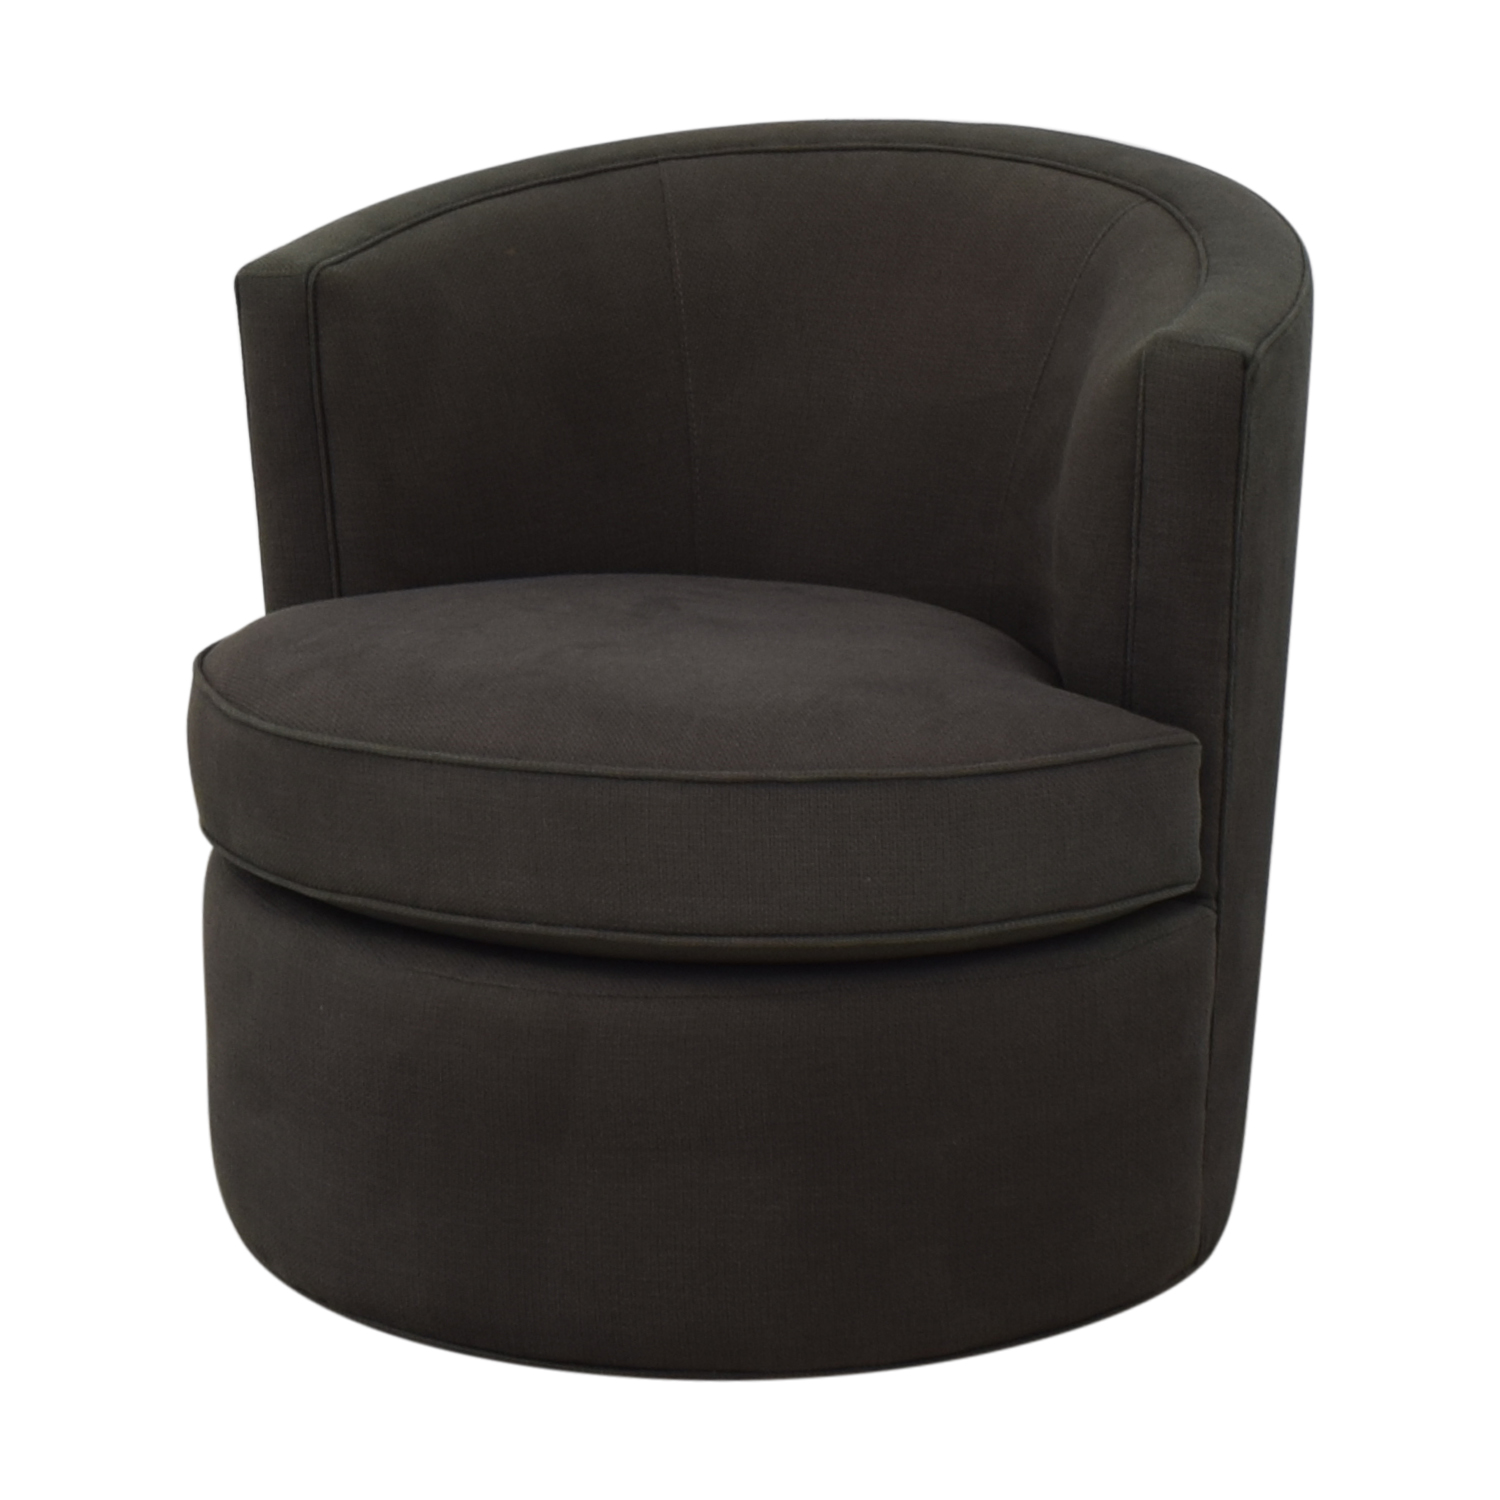 Room & Board Room & Board Otis Swivel Chair coupon